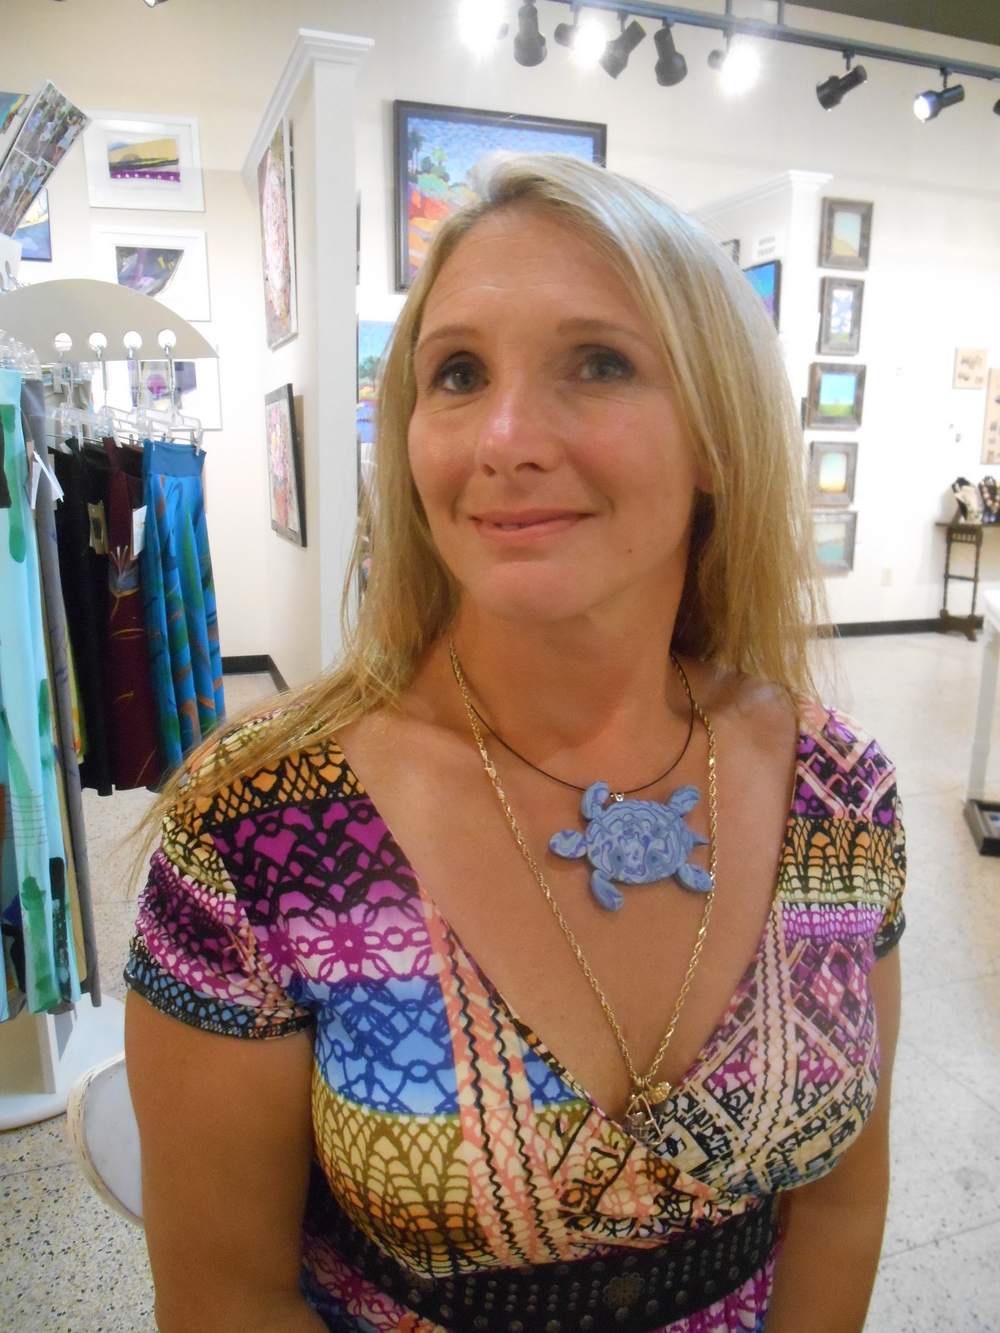 The lovely Carrie is modeling her incredibly unique turtle pendant!  This color scheme and pattern just make me want to swim in it!  Great creative piece!